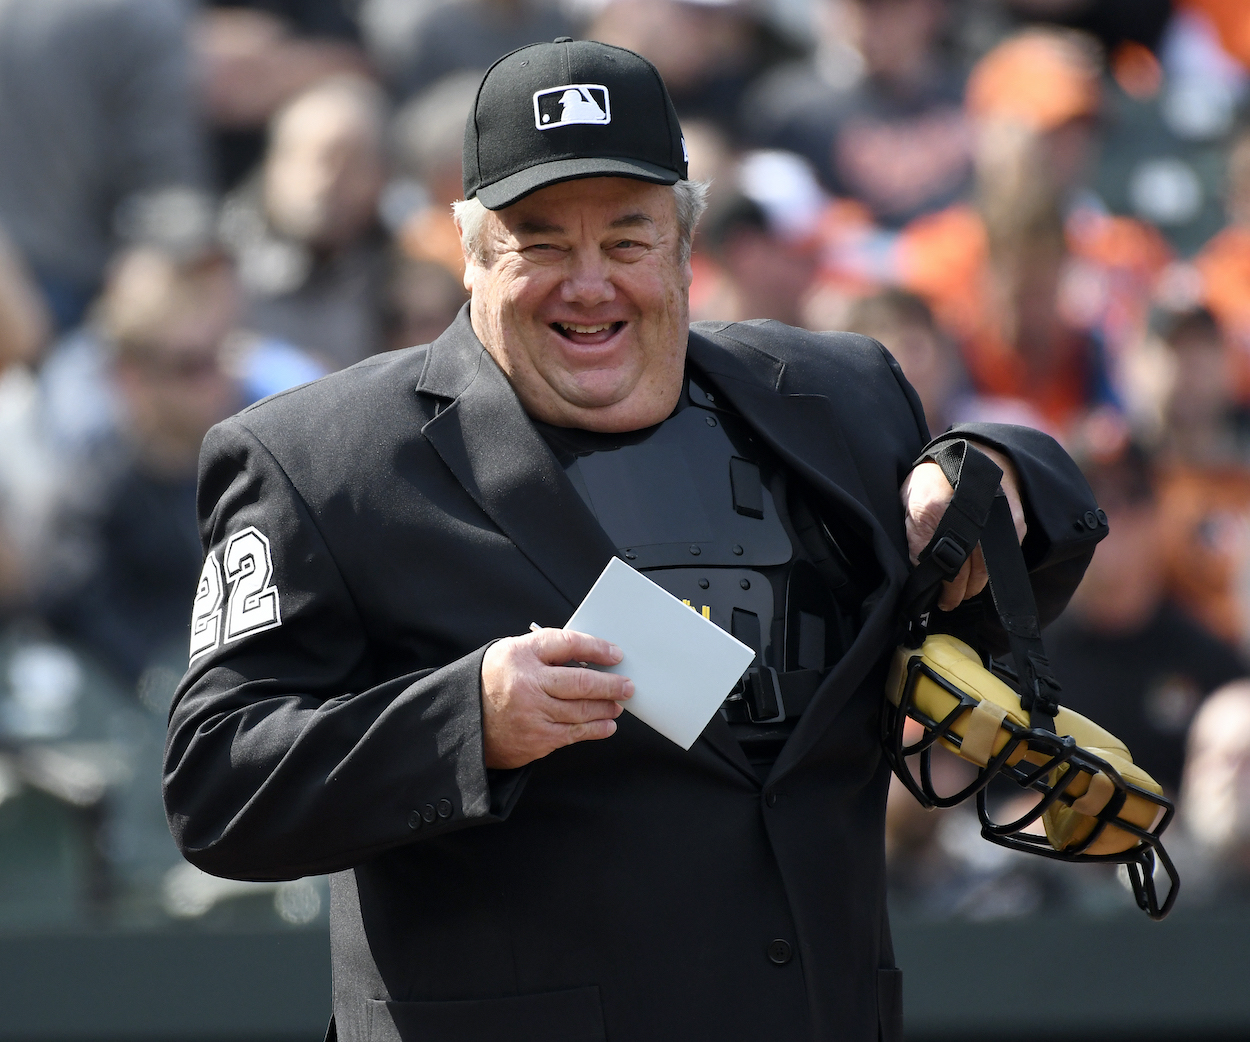 Famed MLB umpire Joe West was just awarded $500,000 in a defamation lawsuit against former New York Mets catcher Paul Lo Duca.